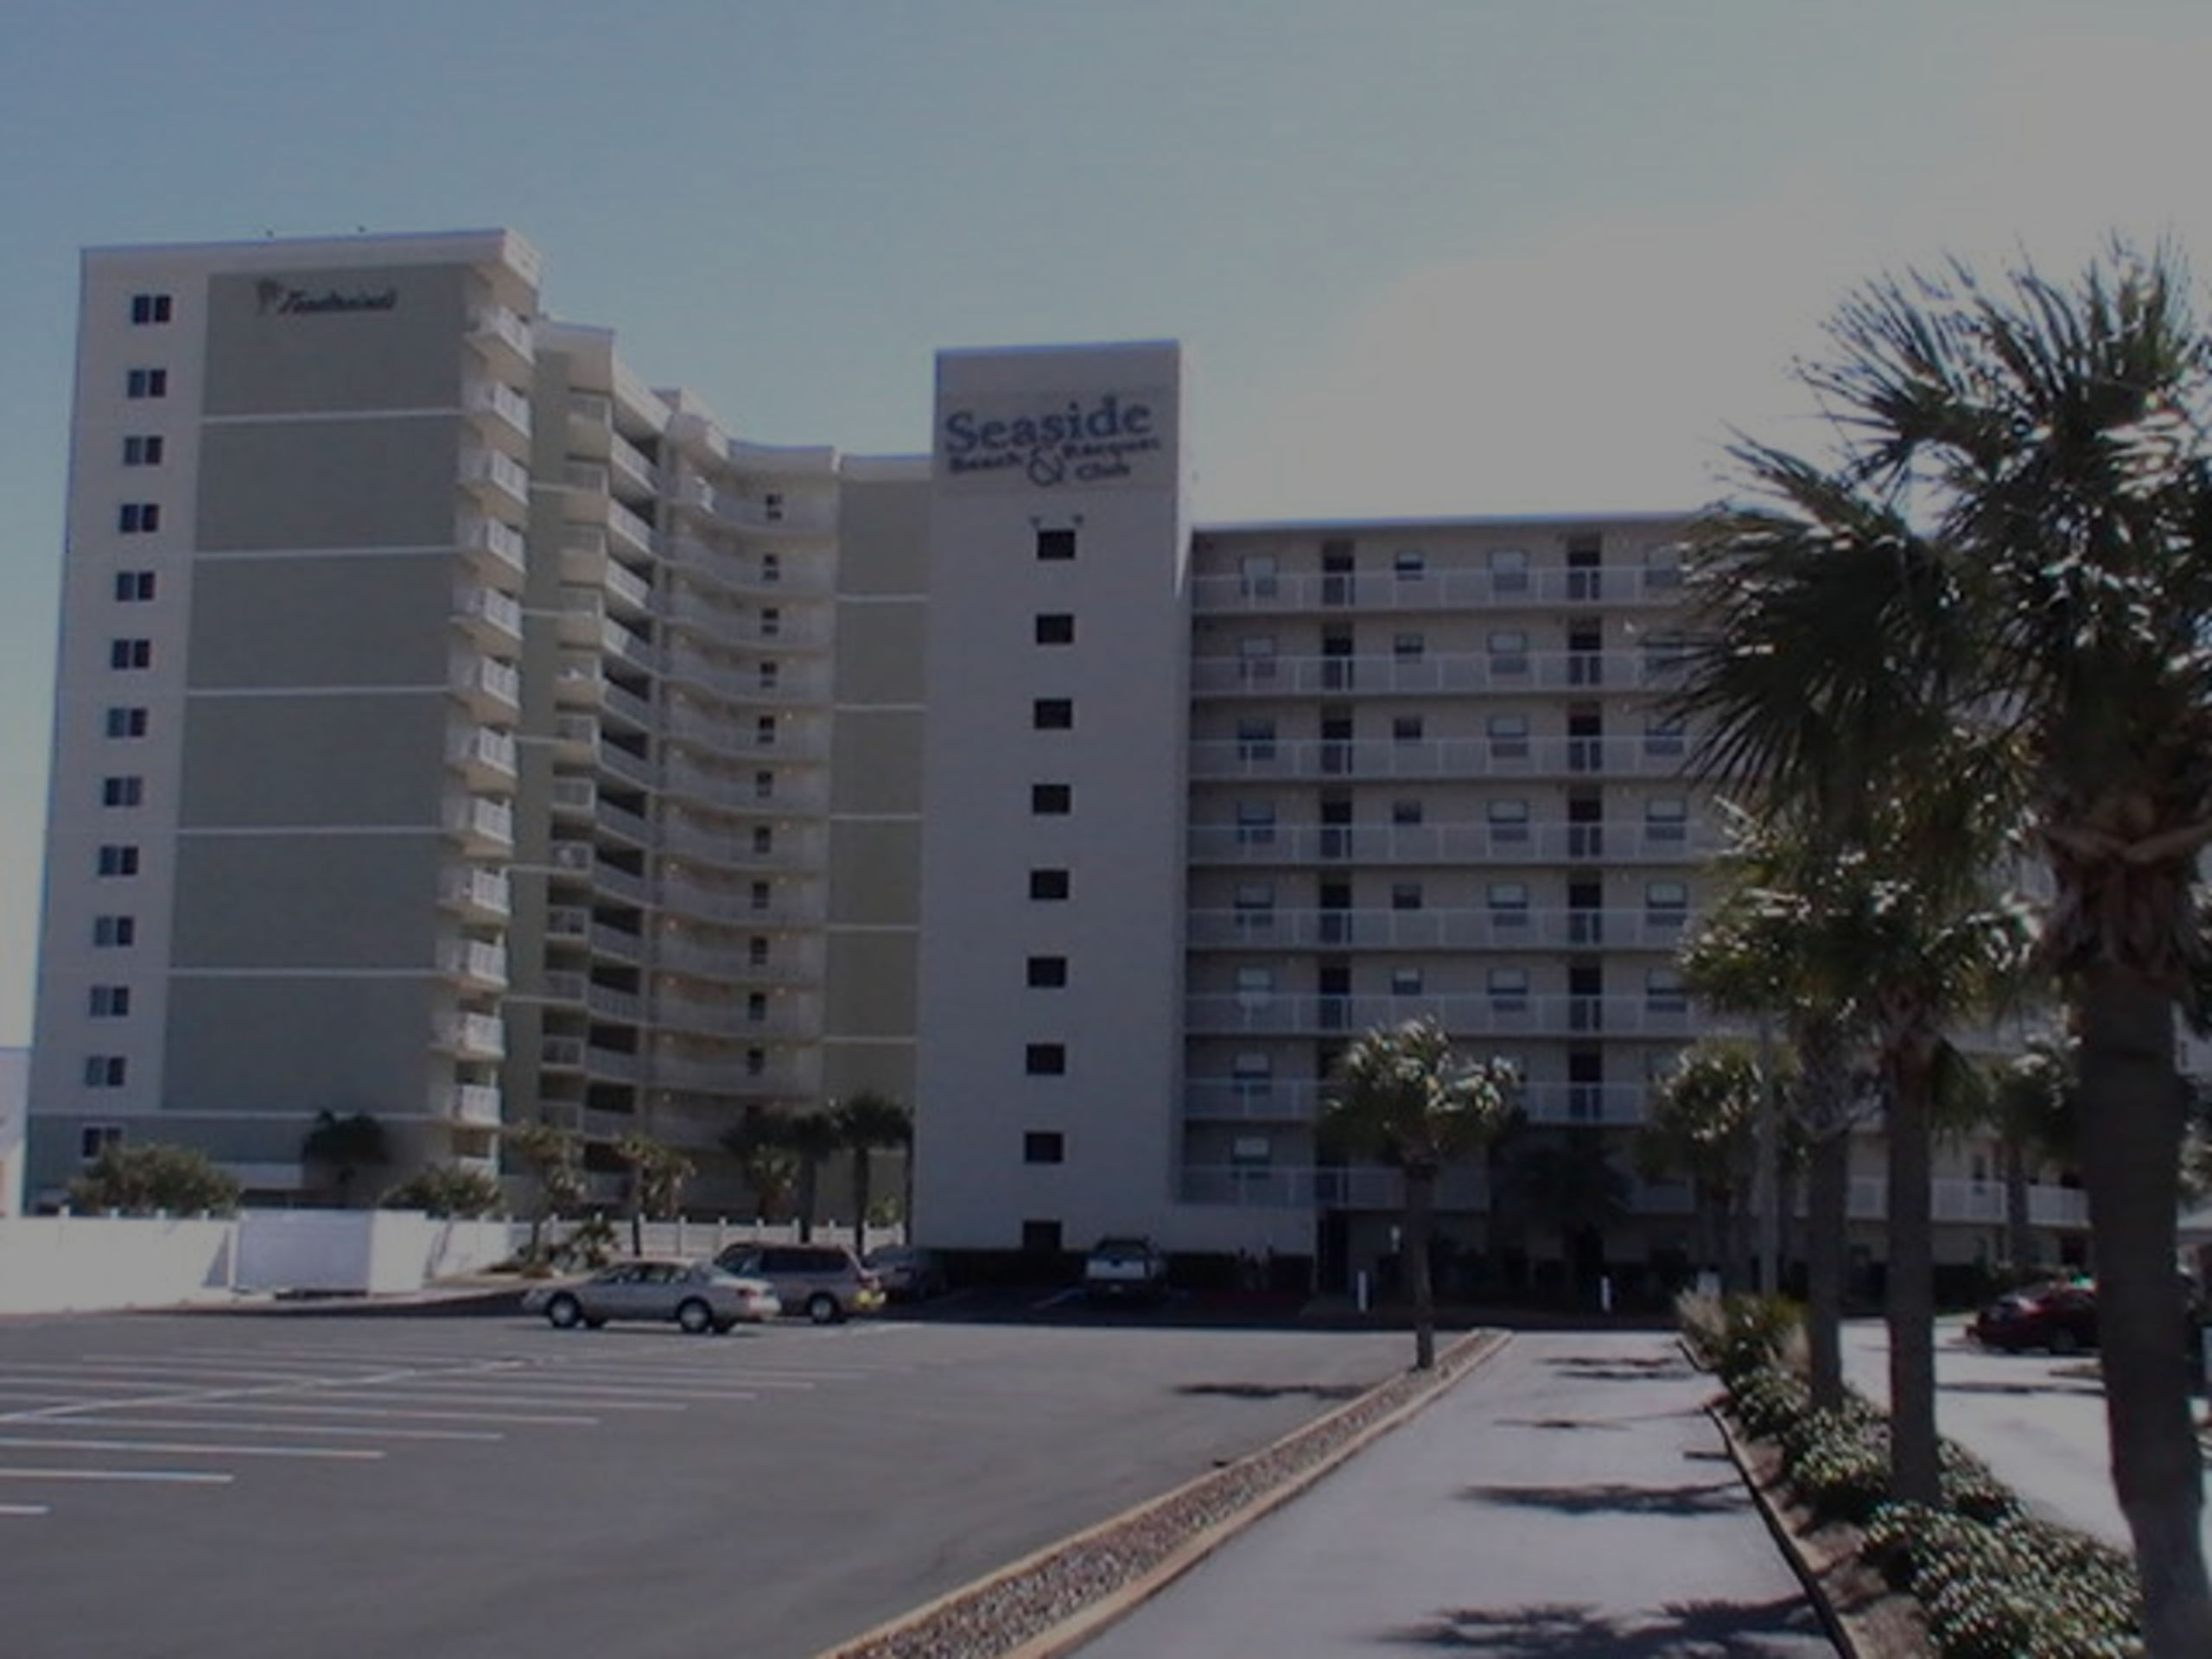 Condos for Sale in Orange Beach from $100,000 to $200,000